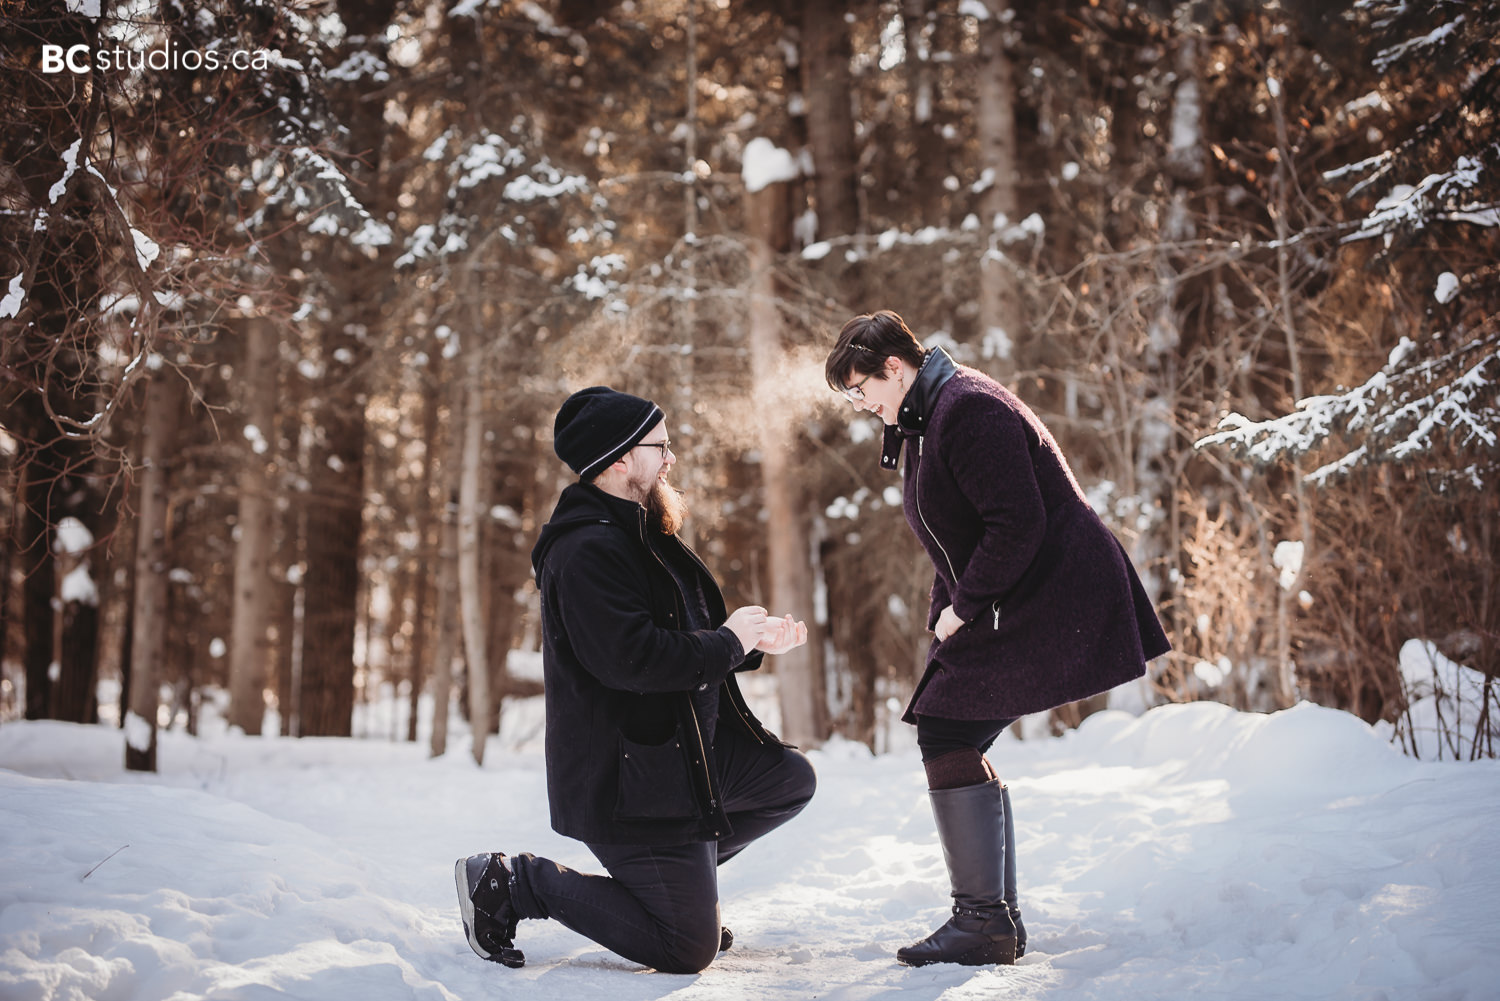 whitemud park engagement guy proposing to girl photo